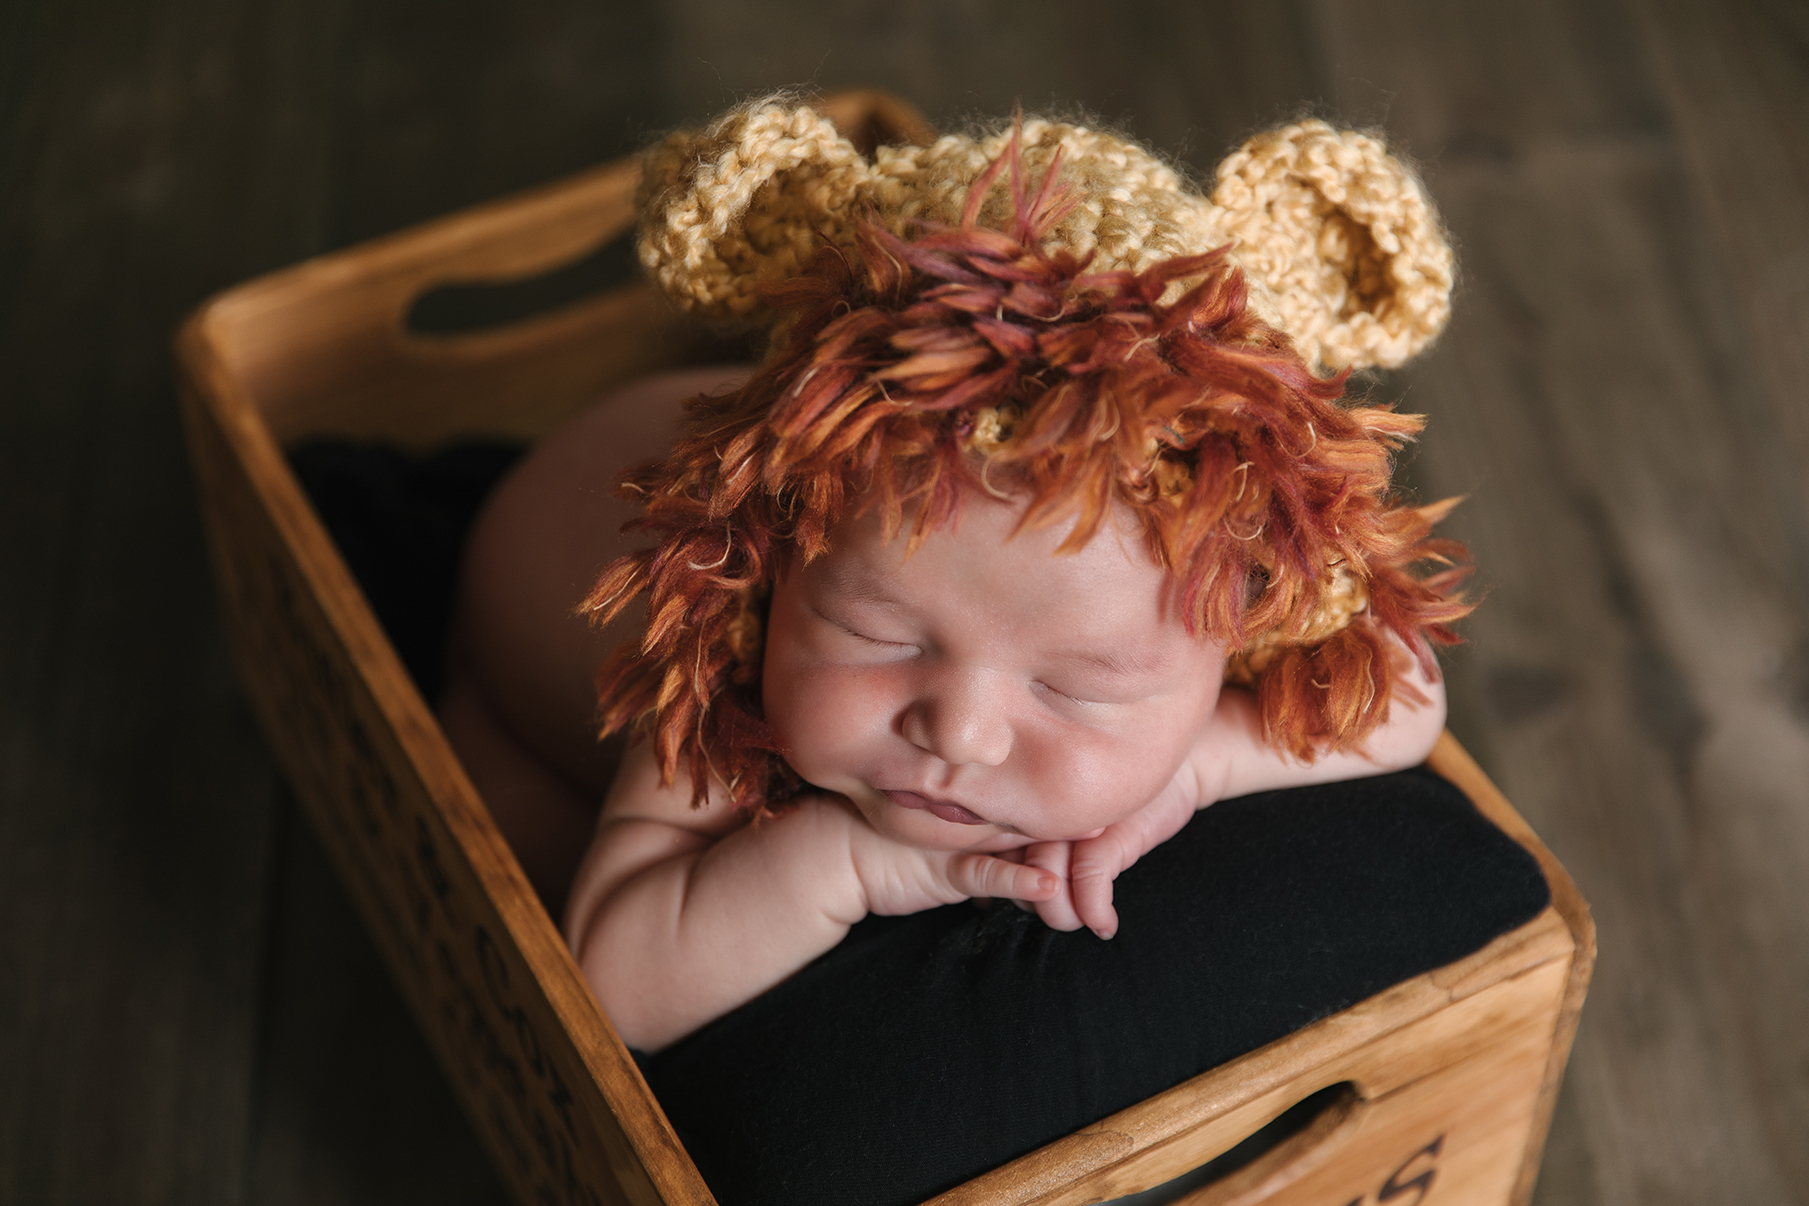 Kinsman_Ohio_Baby_Boy_Taco_Pose_Newborn_photography_by_Christie_Leigh_Photo_in_Cortland_Ohio-003.jpg